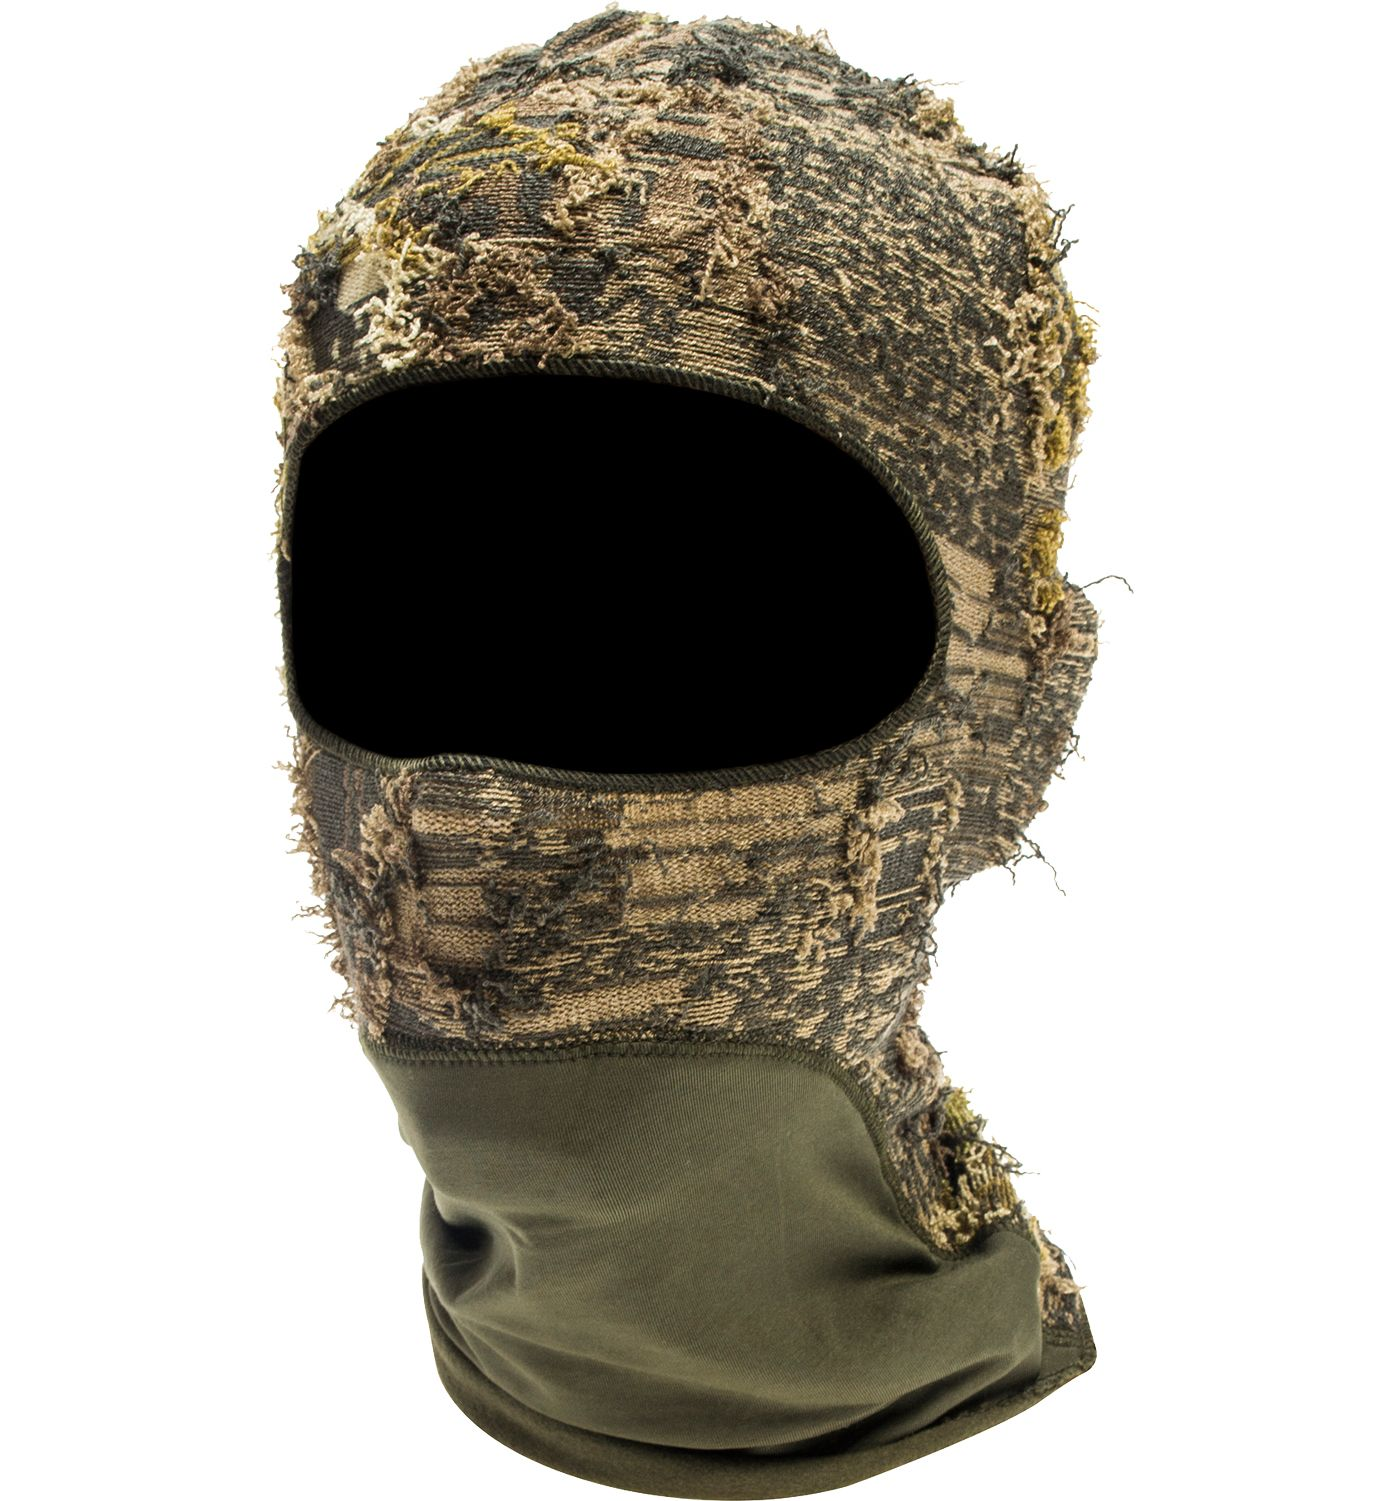 QuietWear Grassy 1-Hole Mask